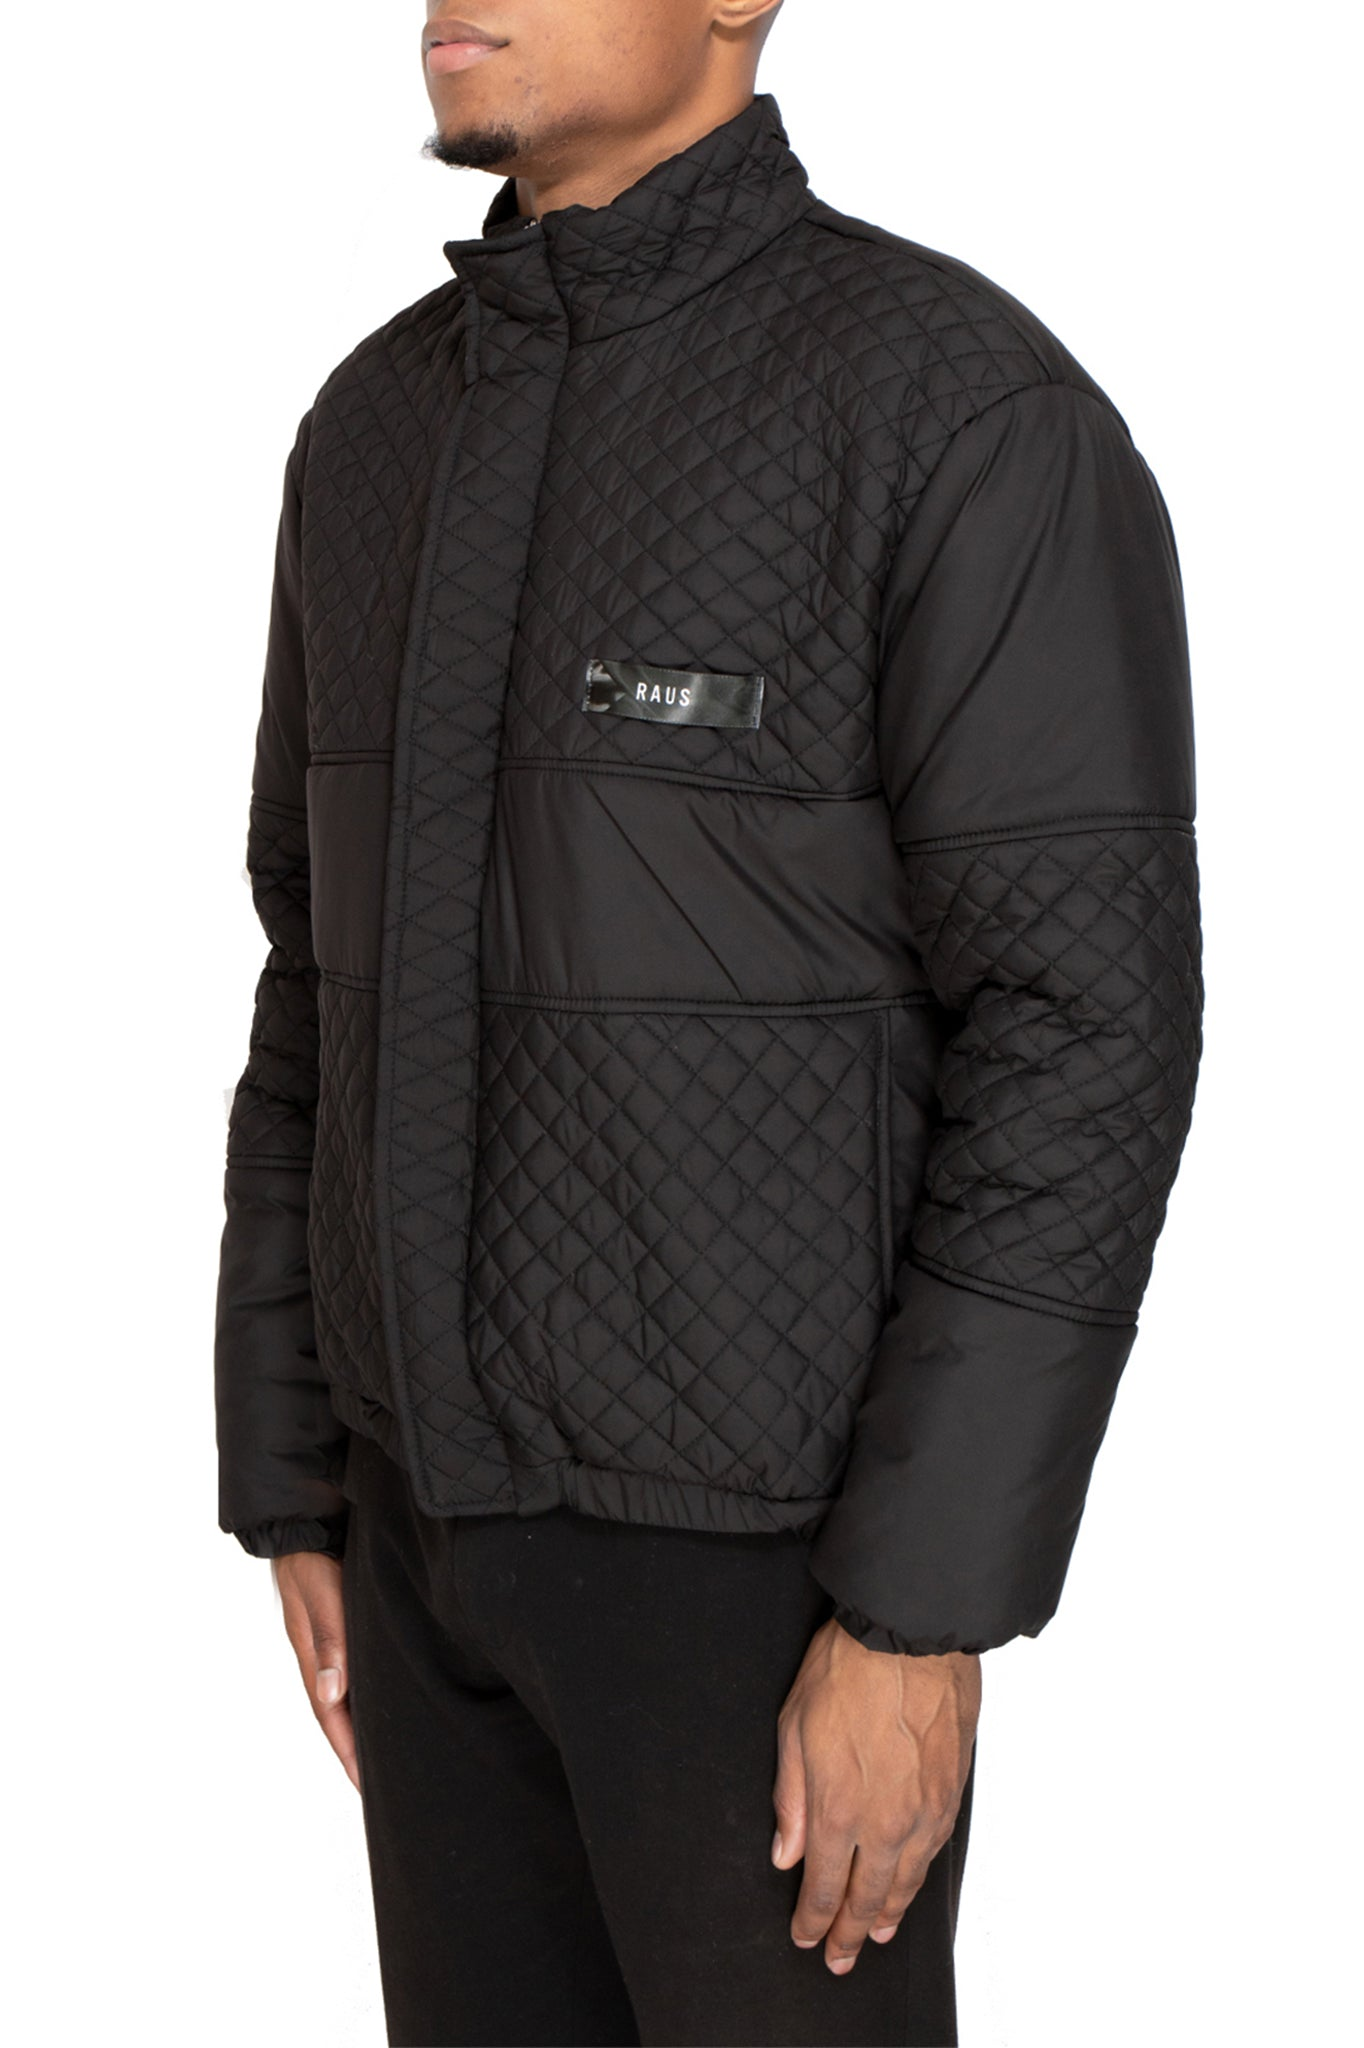 Raus Black Quilted Soft Nylon Panelled Jacket